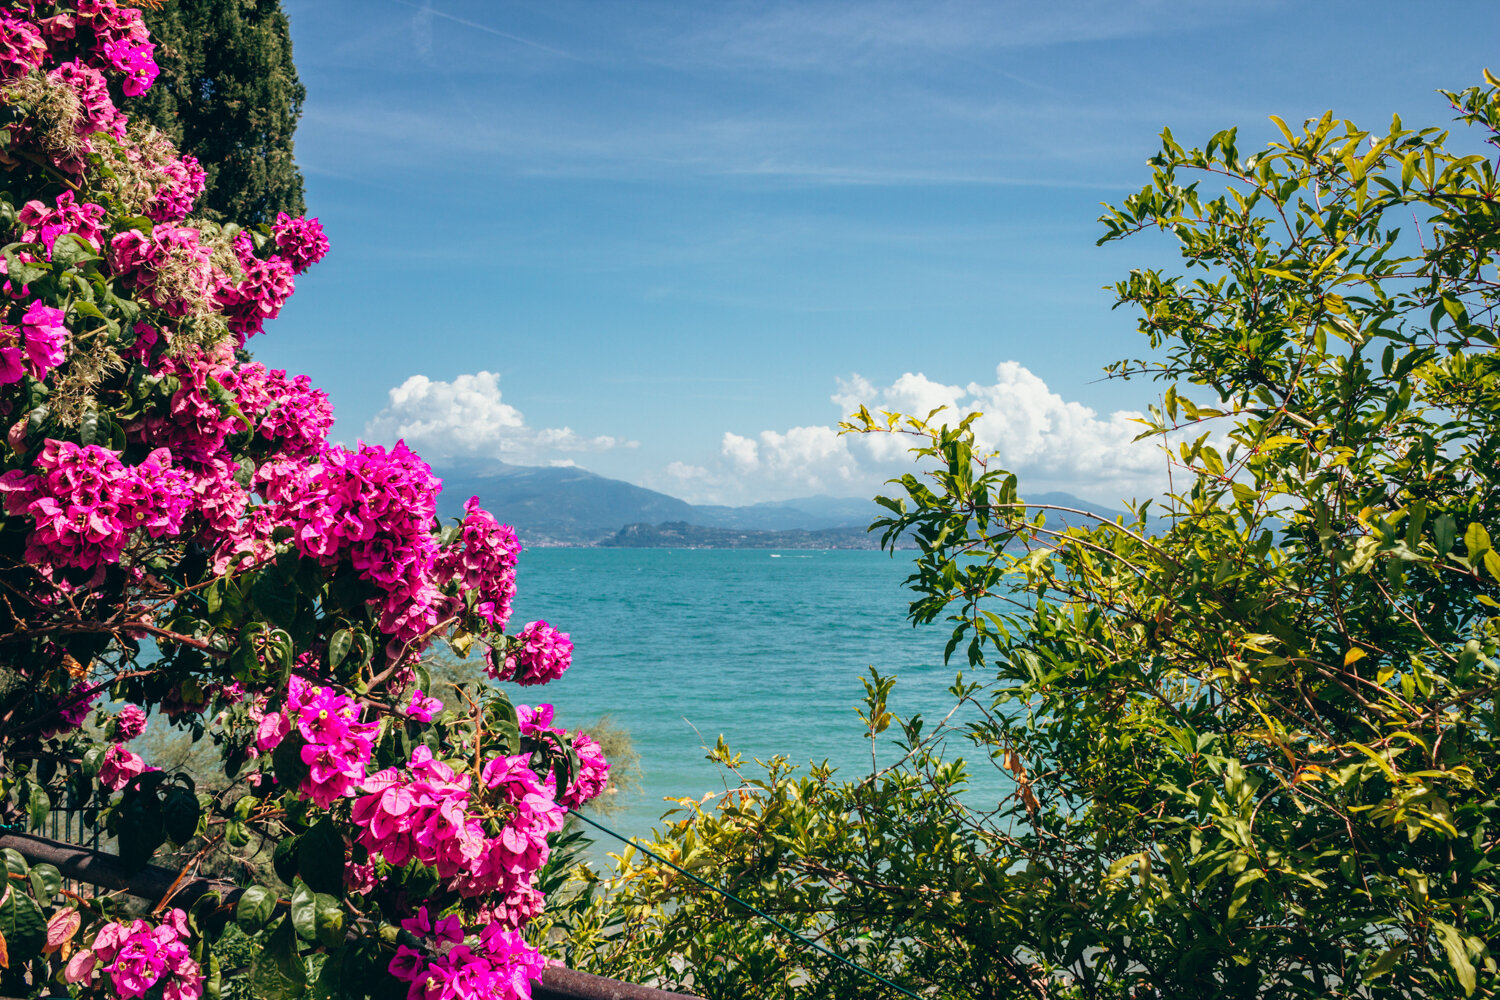 This was the most beautiful place I've even seen. On my latest trip to Italy I went to Lake Garda and it was everything I dreamed of and even more.